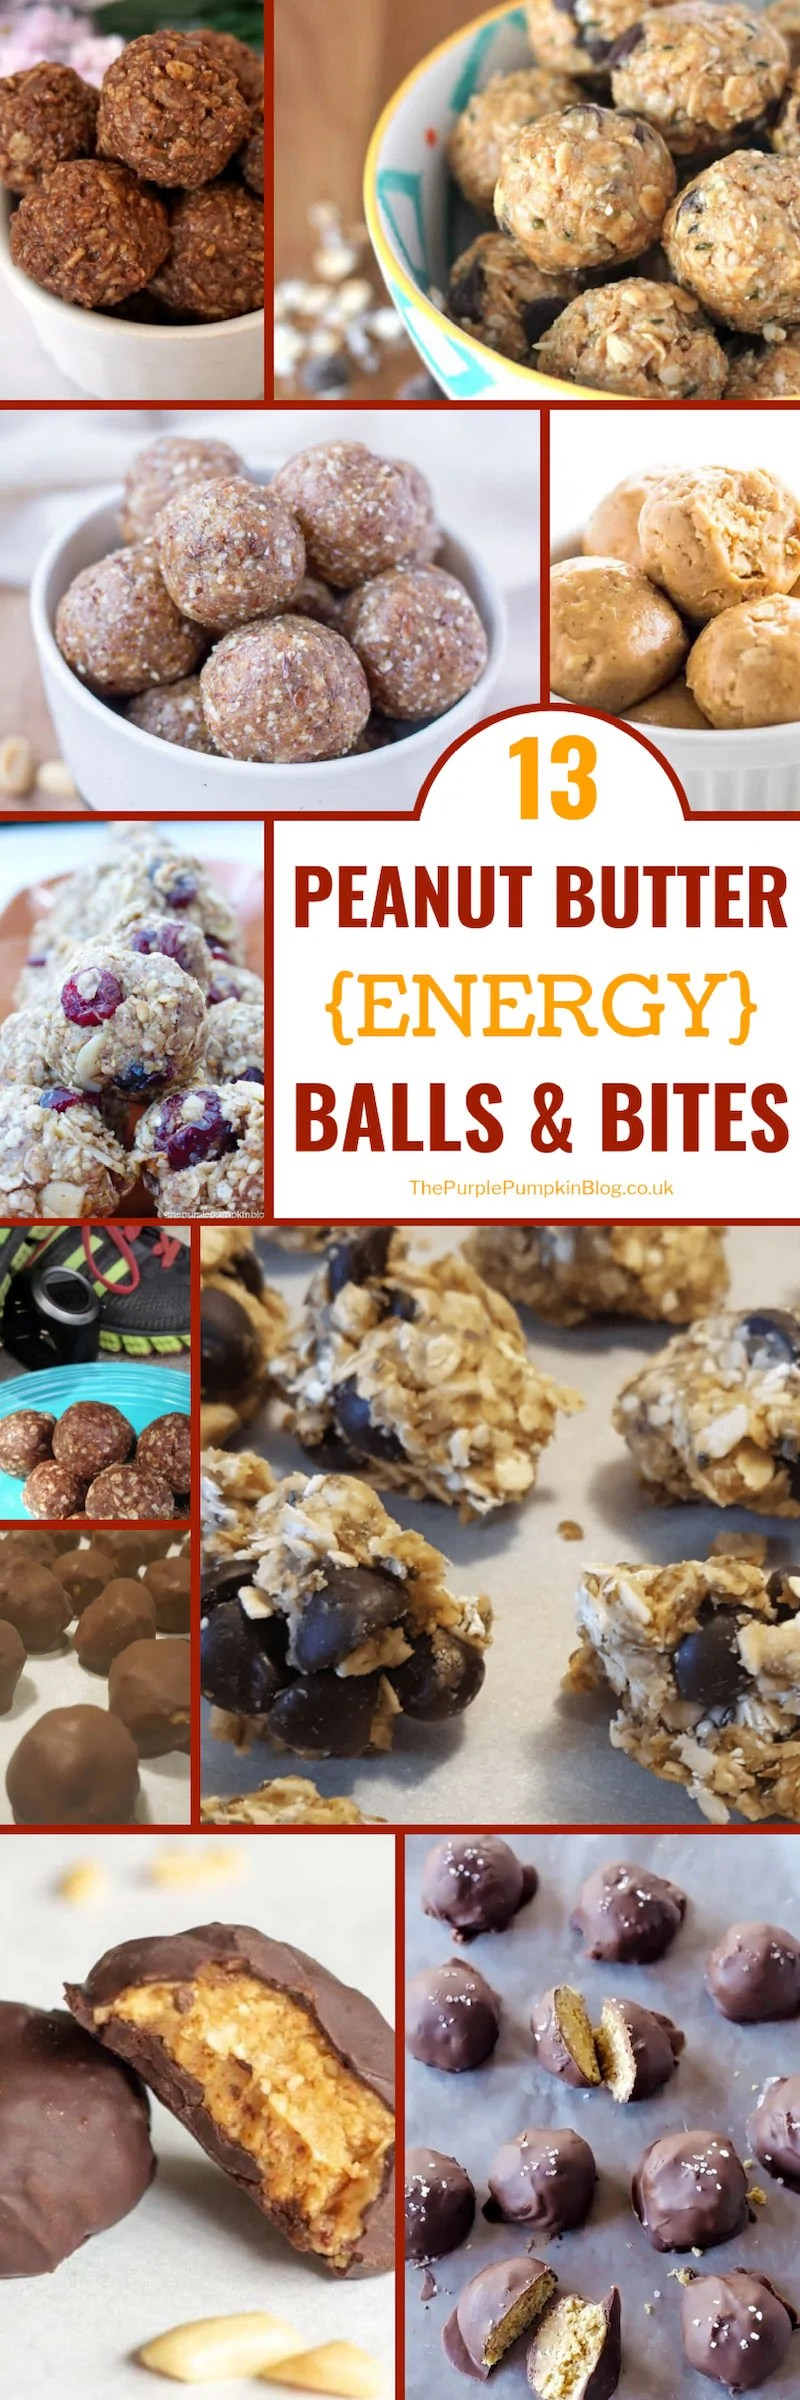 For when you are craving something sweet, but on the healthier side, why not turn to one of these 13 Peanut Butter Energy Balls & Bites Recipes? This roundup of peanut butter energy balls and bites include: Low Carb; Keto; Gluten-Free, Sugar-Free, Grain-Free, and Vegan recipes. They are also all no-bake, making them so simple and quick to prepare! #PeanutButterEnergyBalls #EnergyBalls #lowcarb #keto #fatbombs